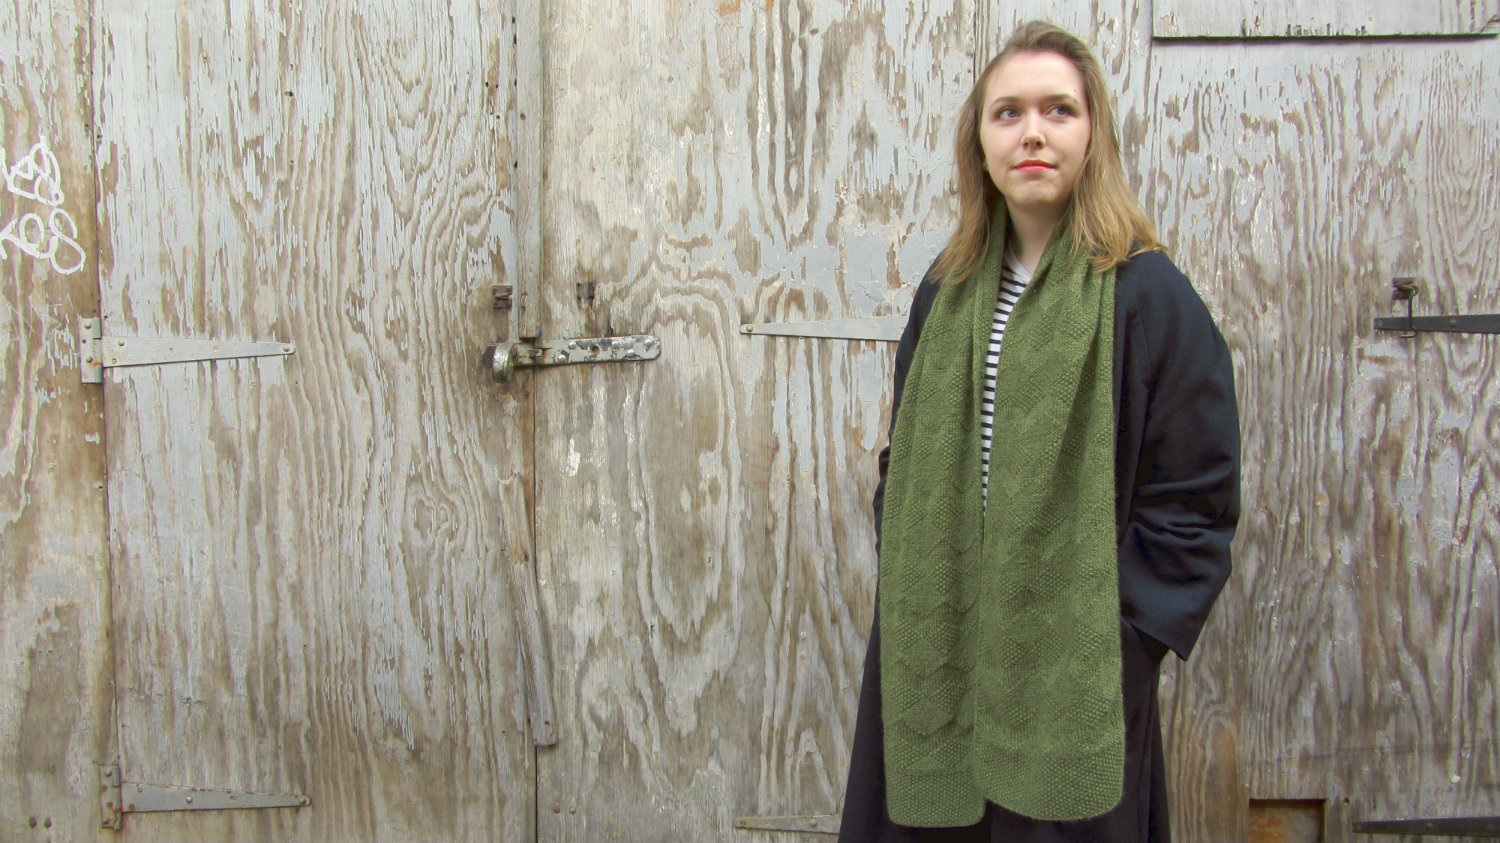 The Lovelock scarf is wide and long for maximum wrapping potential.